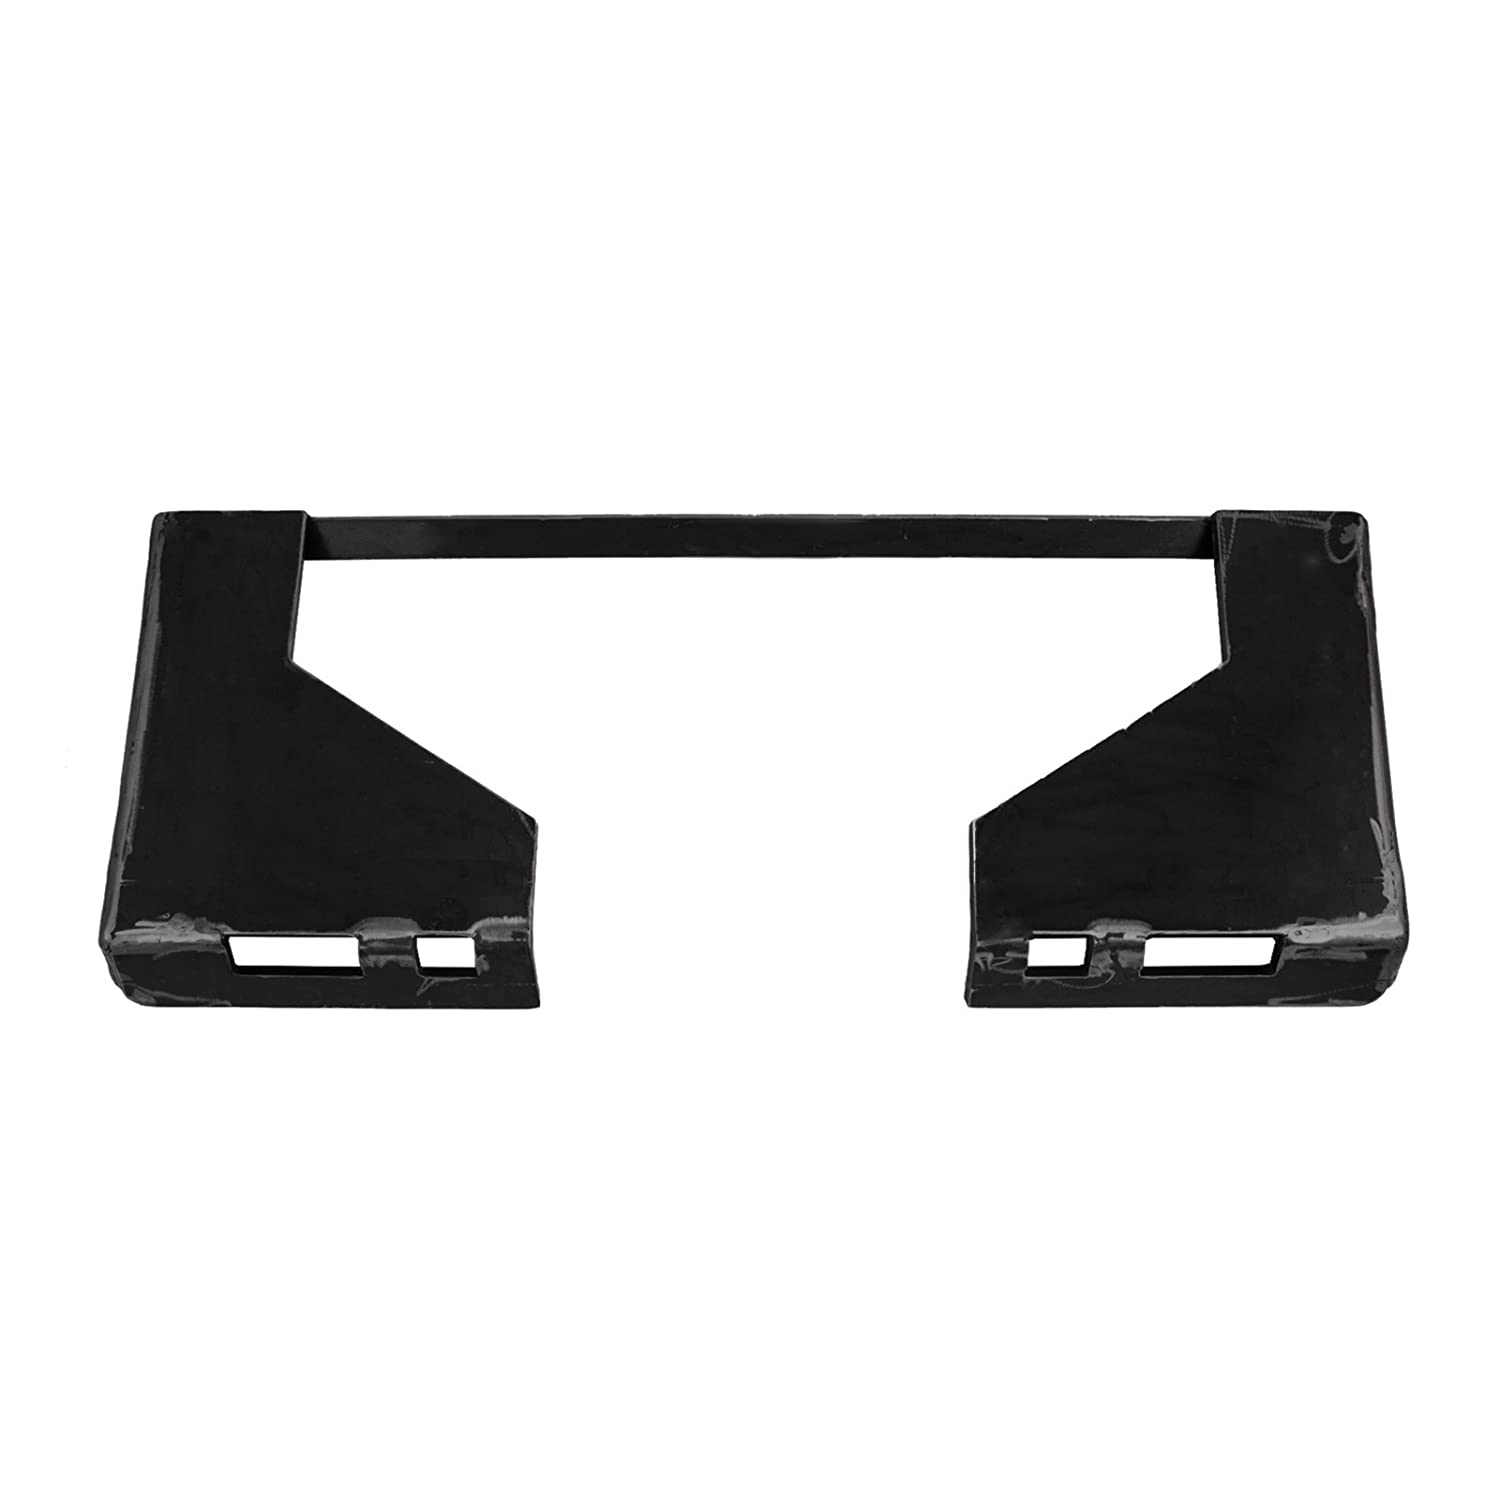 Mophorn 5/16 Inch Universal Quick Attach Mount Plate Skid Steer Attachment Mount Plate Heavy Duty 46Lbs Steel Plate with 31.5Inch Inside Cut Out for Plate (5/16)